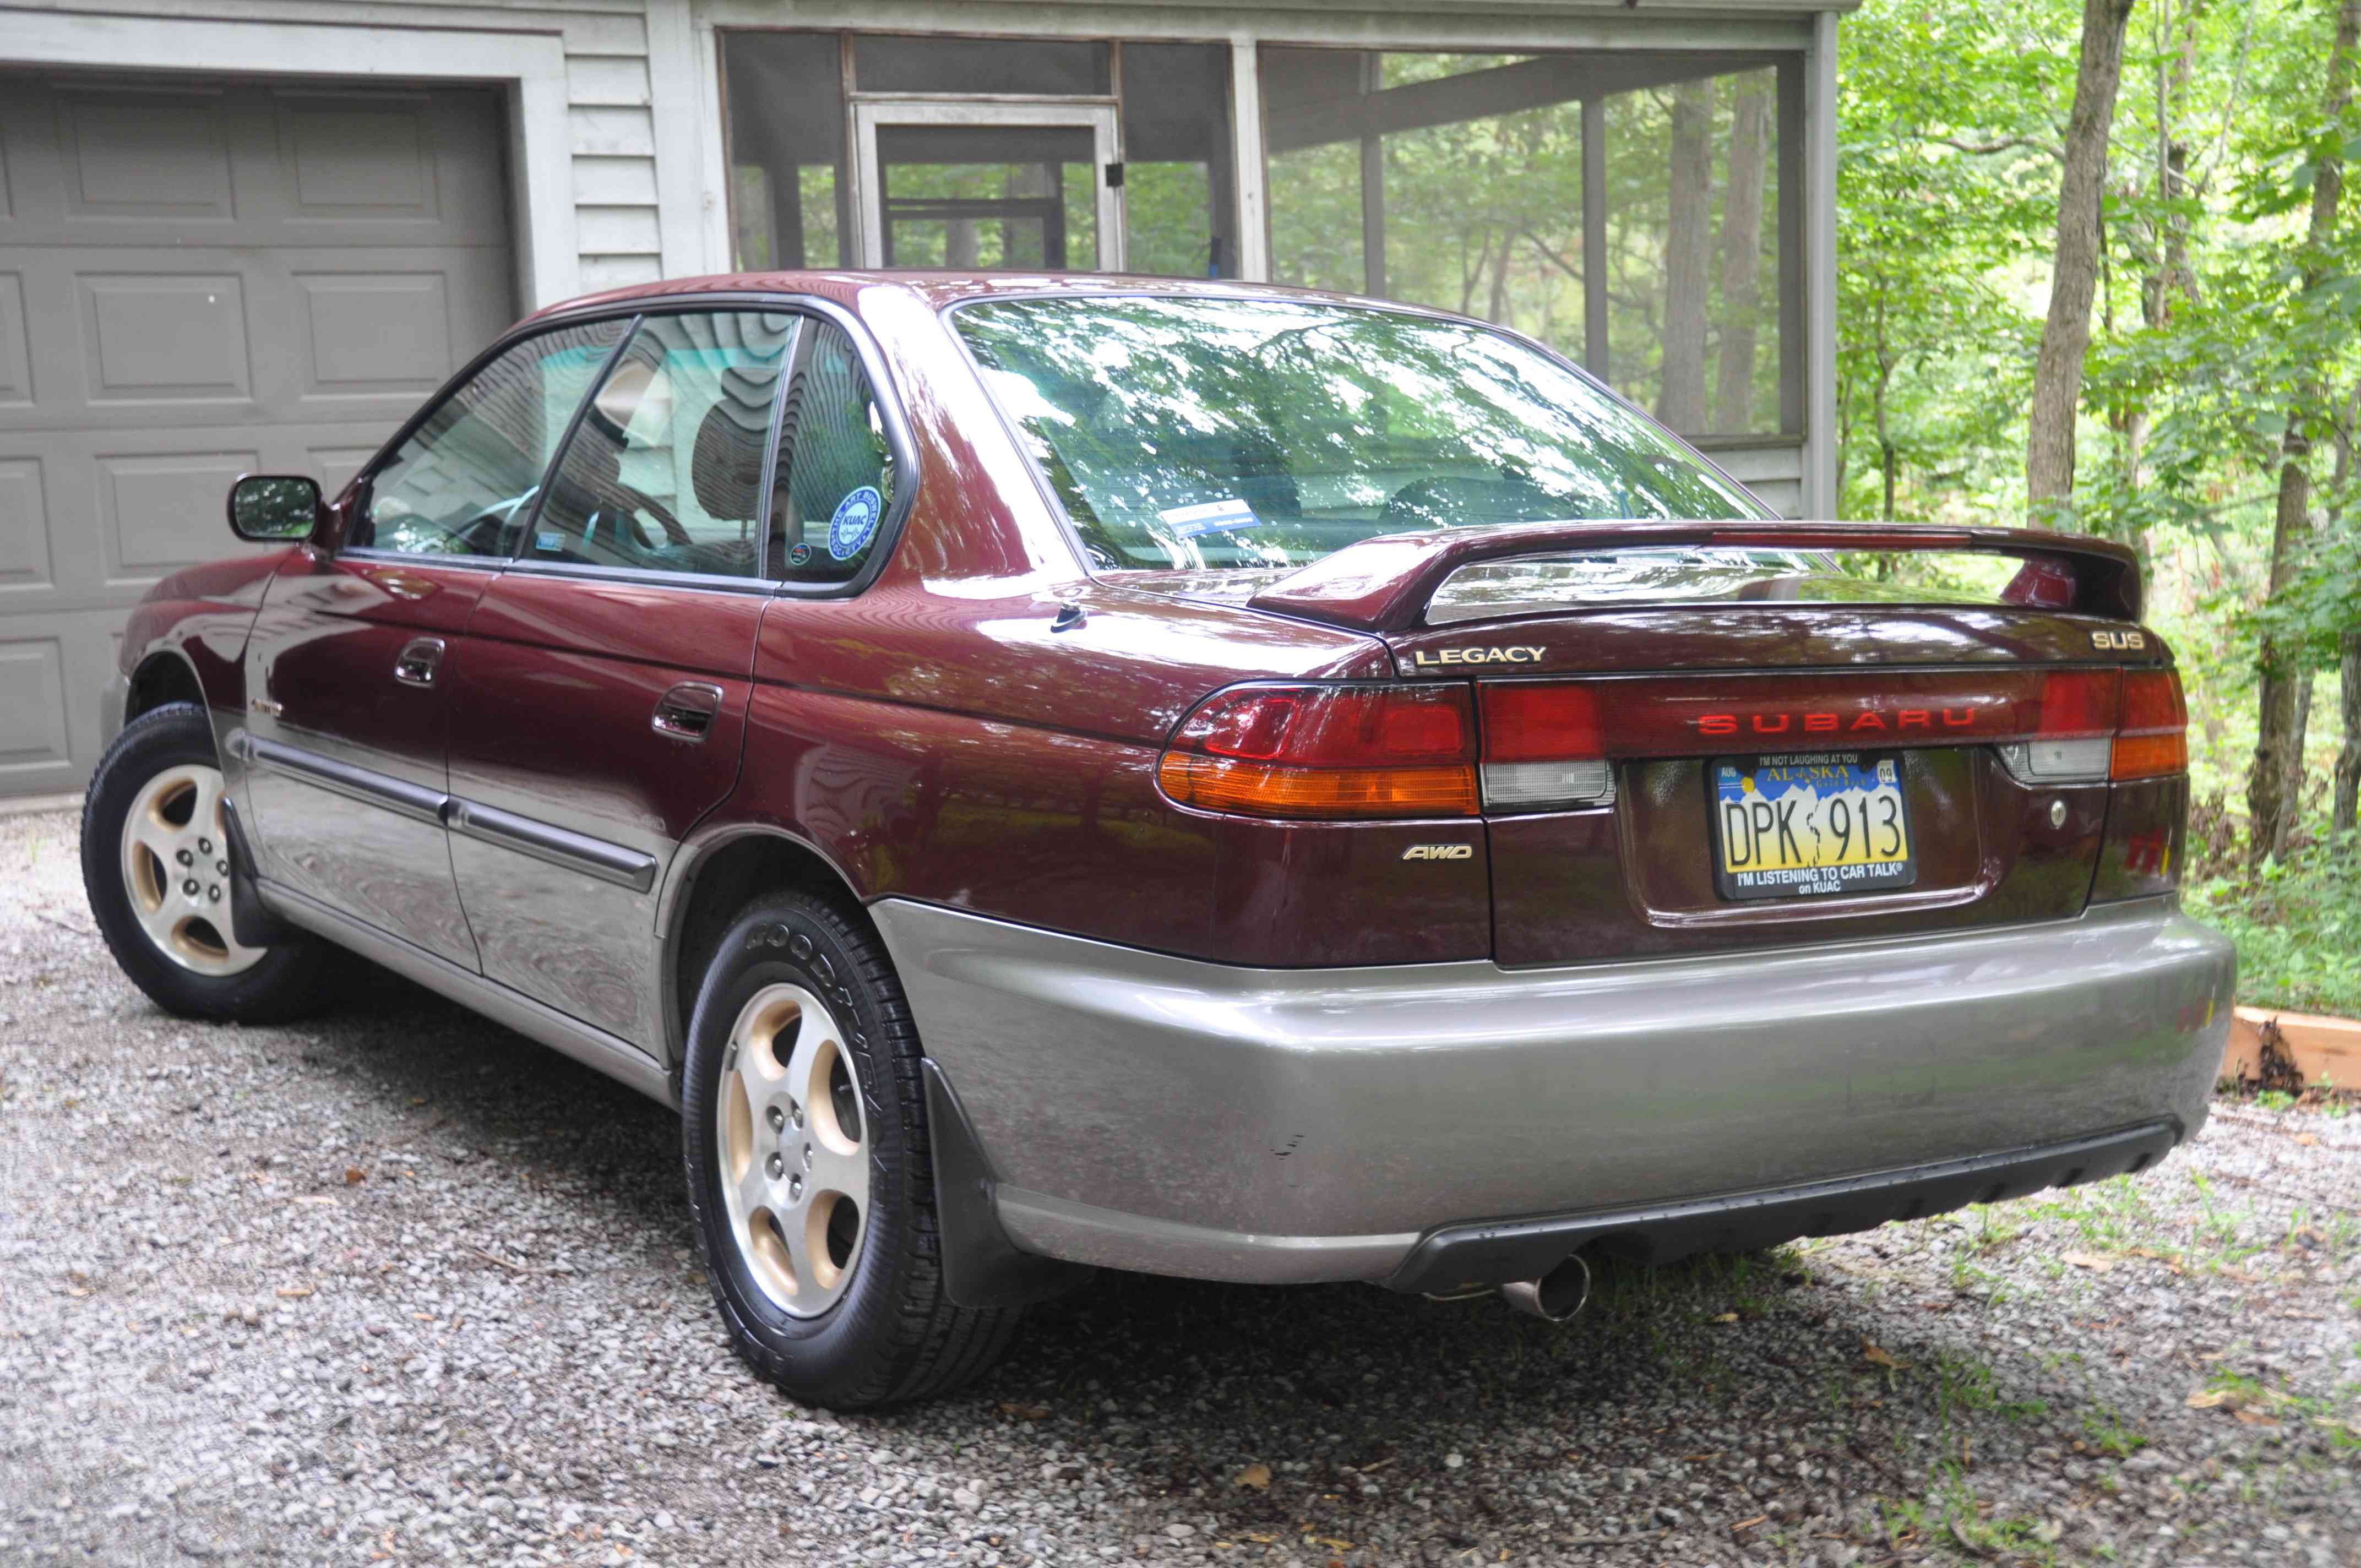 1999 Subaru Legacy Outback Limited >> 1999 Subaru Legacy 3 – pictures, information and specs - Auto-Database.com